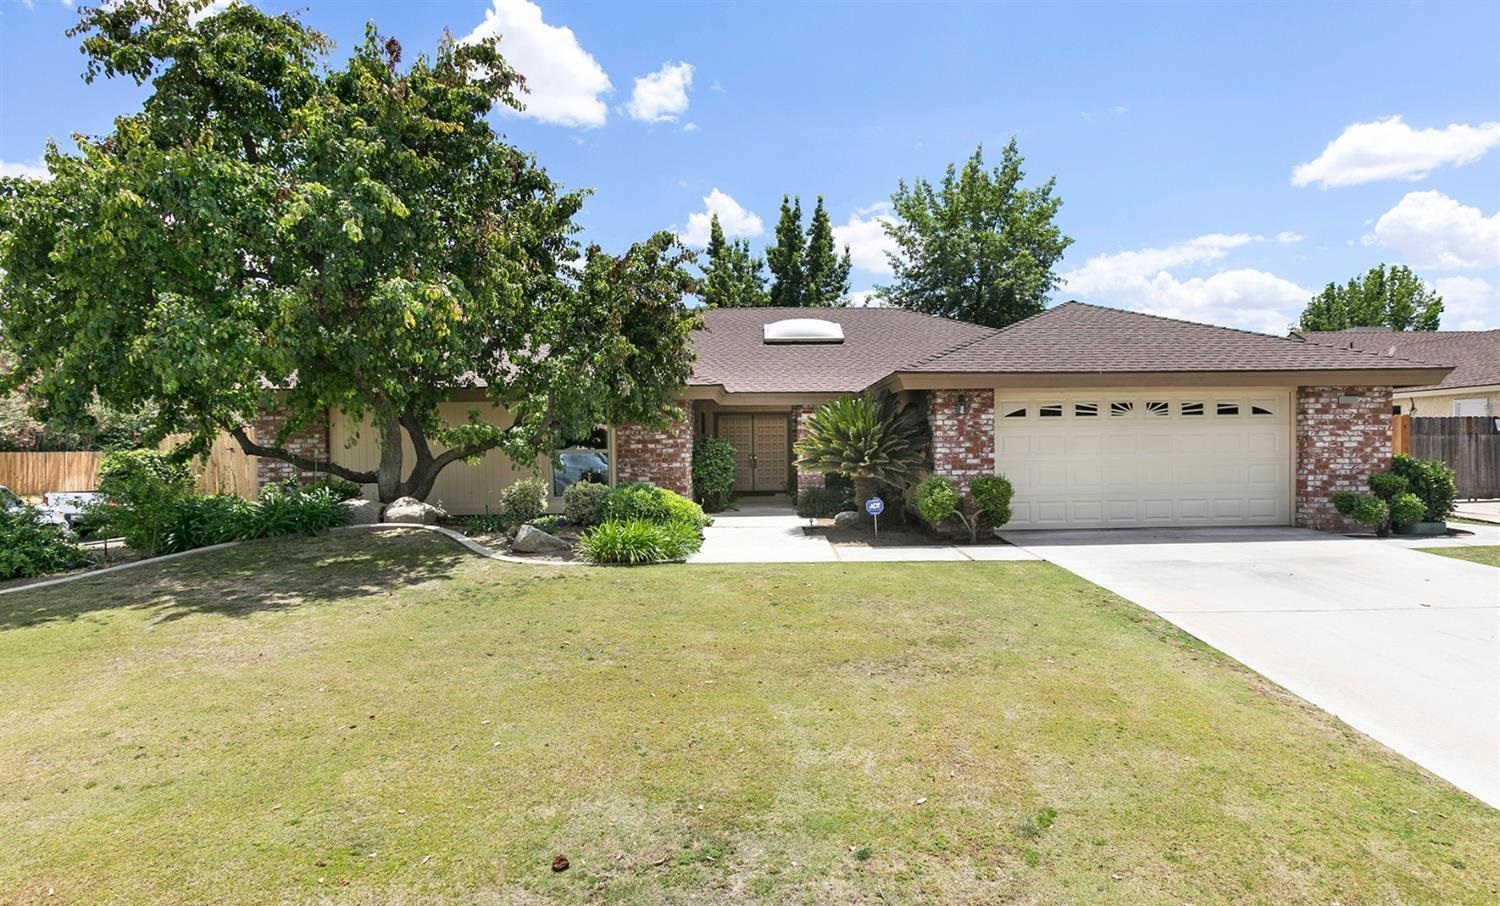 Homes For Sale in The Oaks Bakersfield